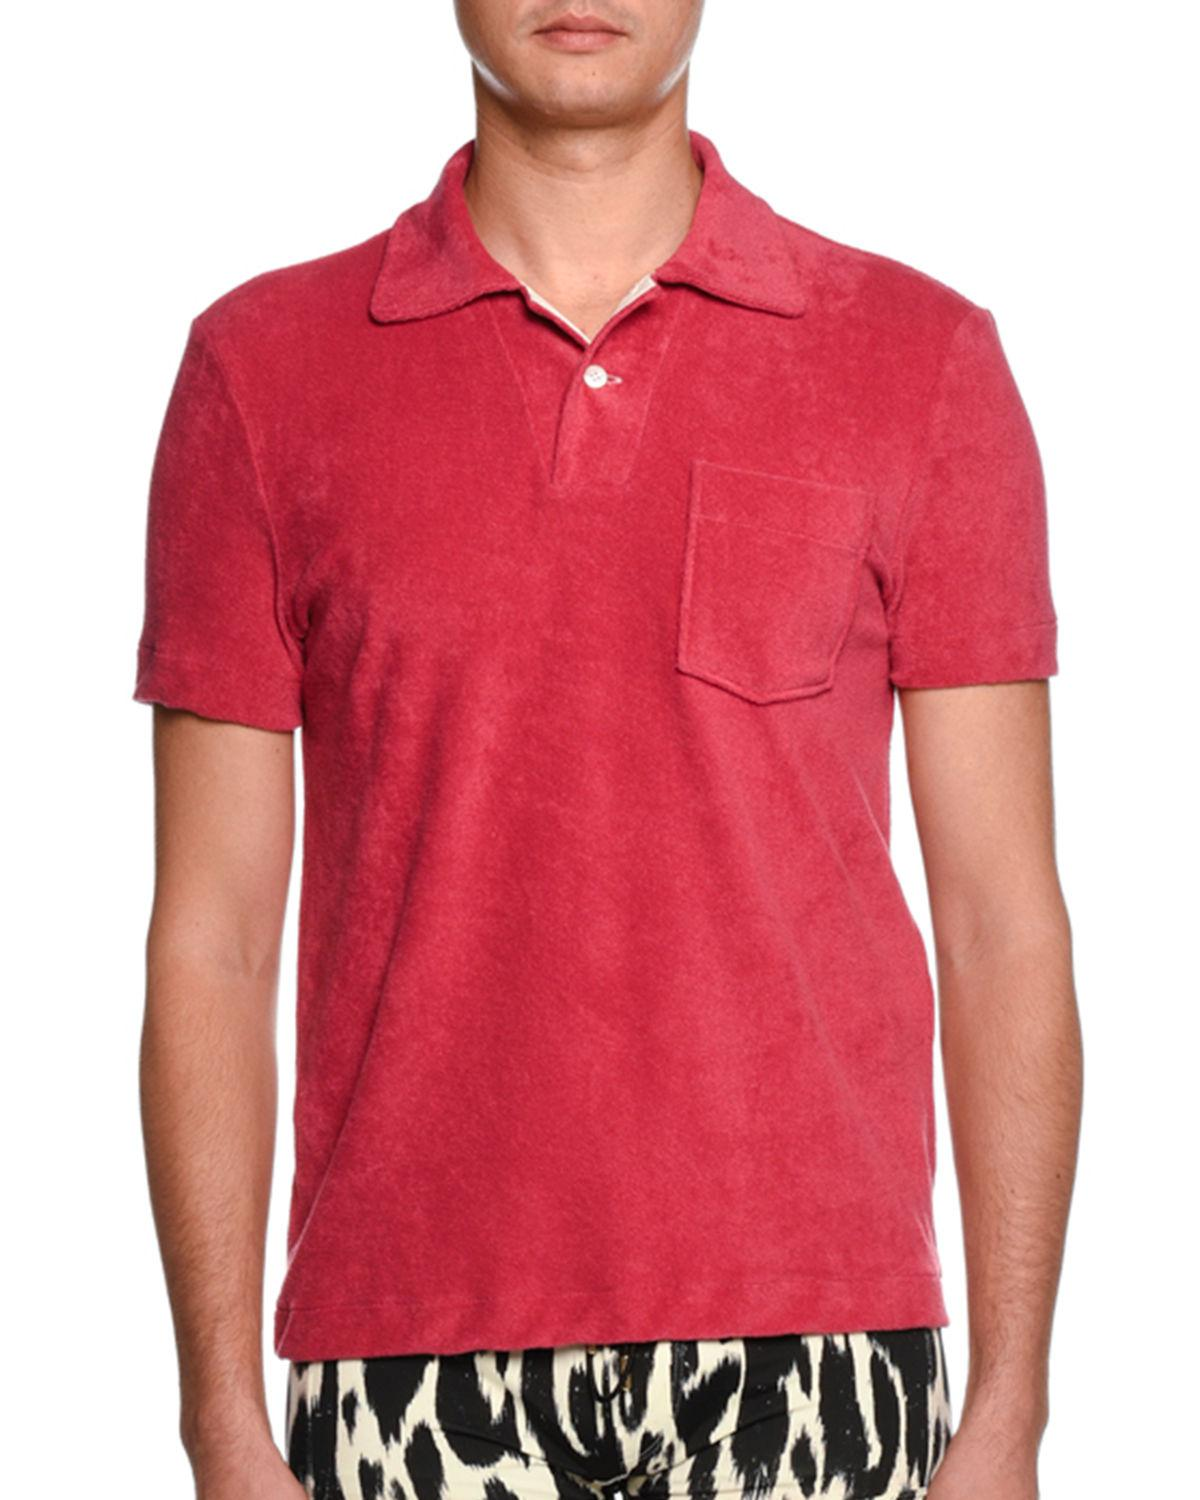 5712523b Tom Ford Mens Polo Shirts